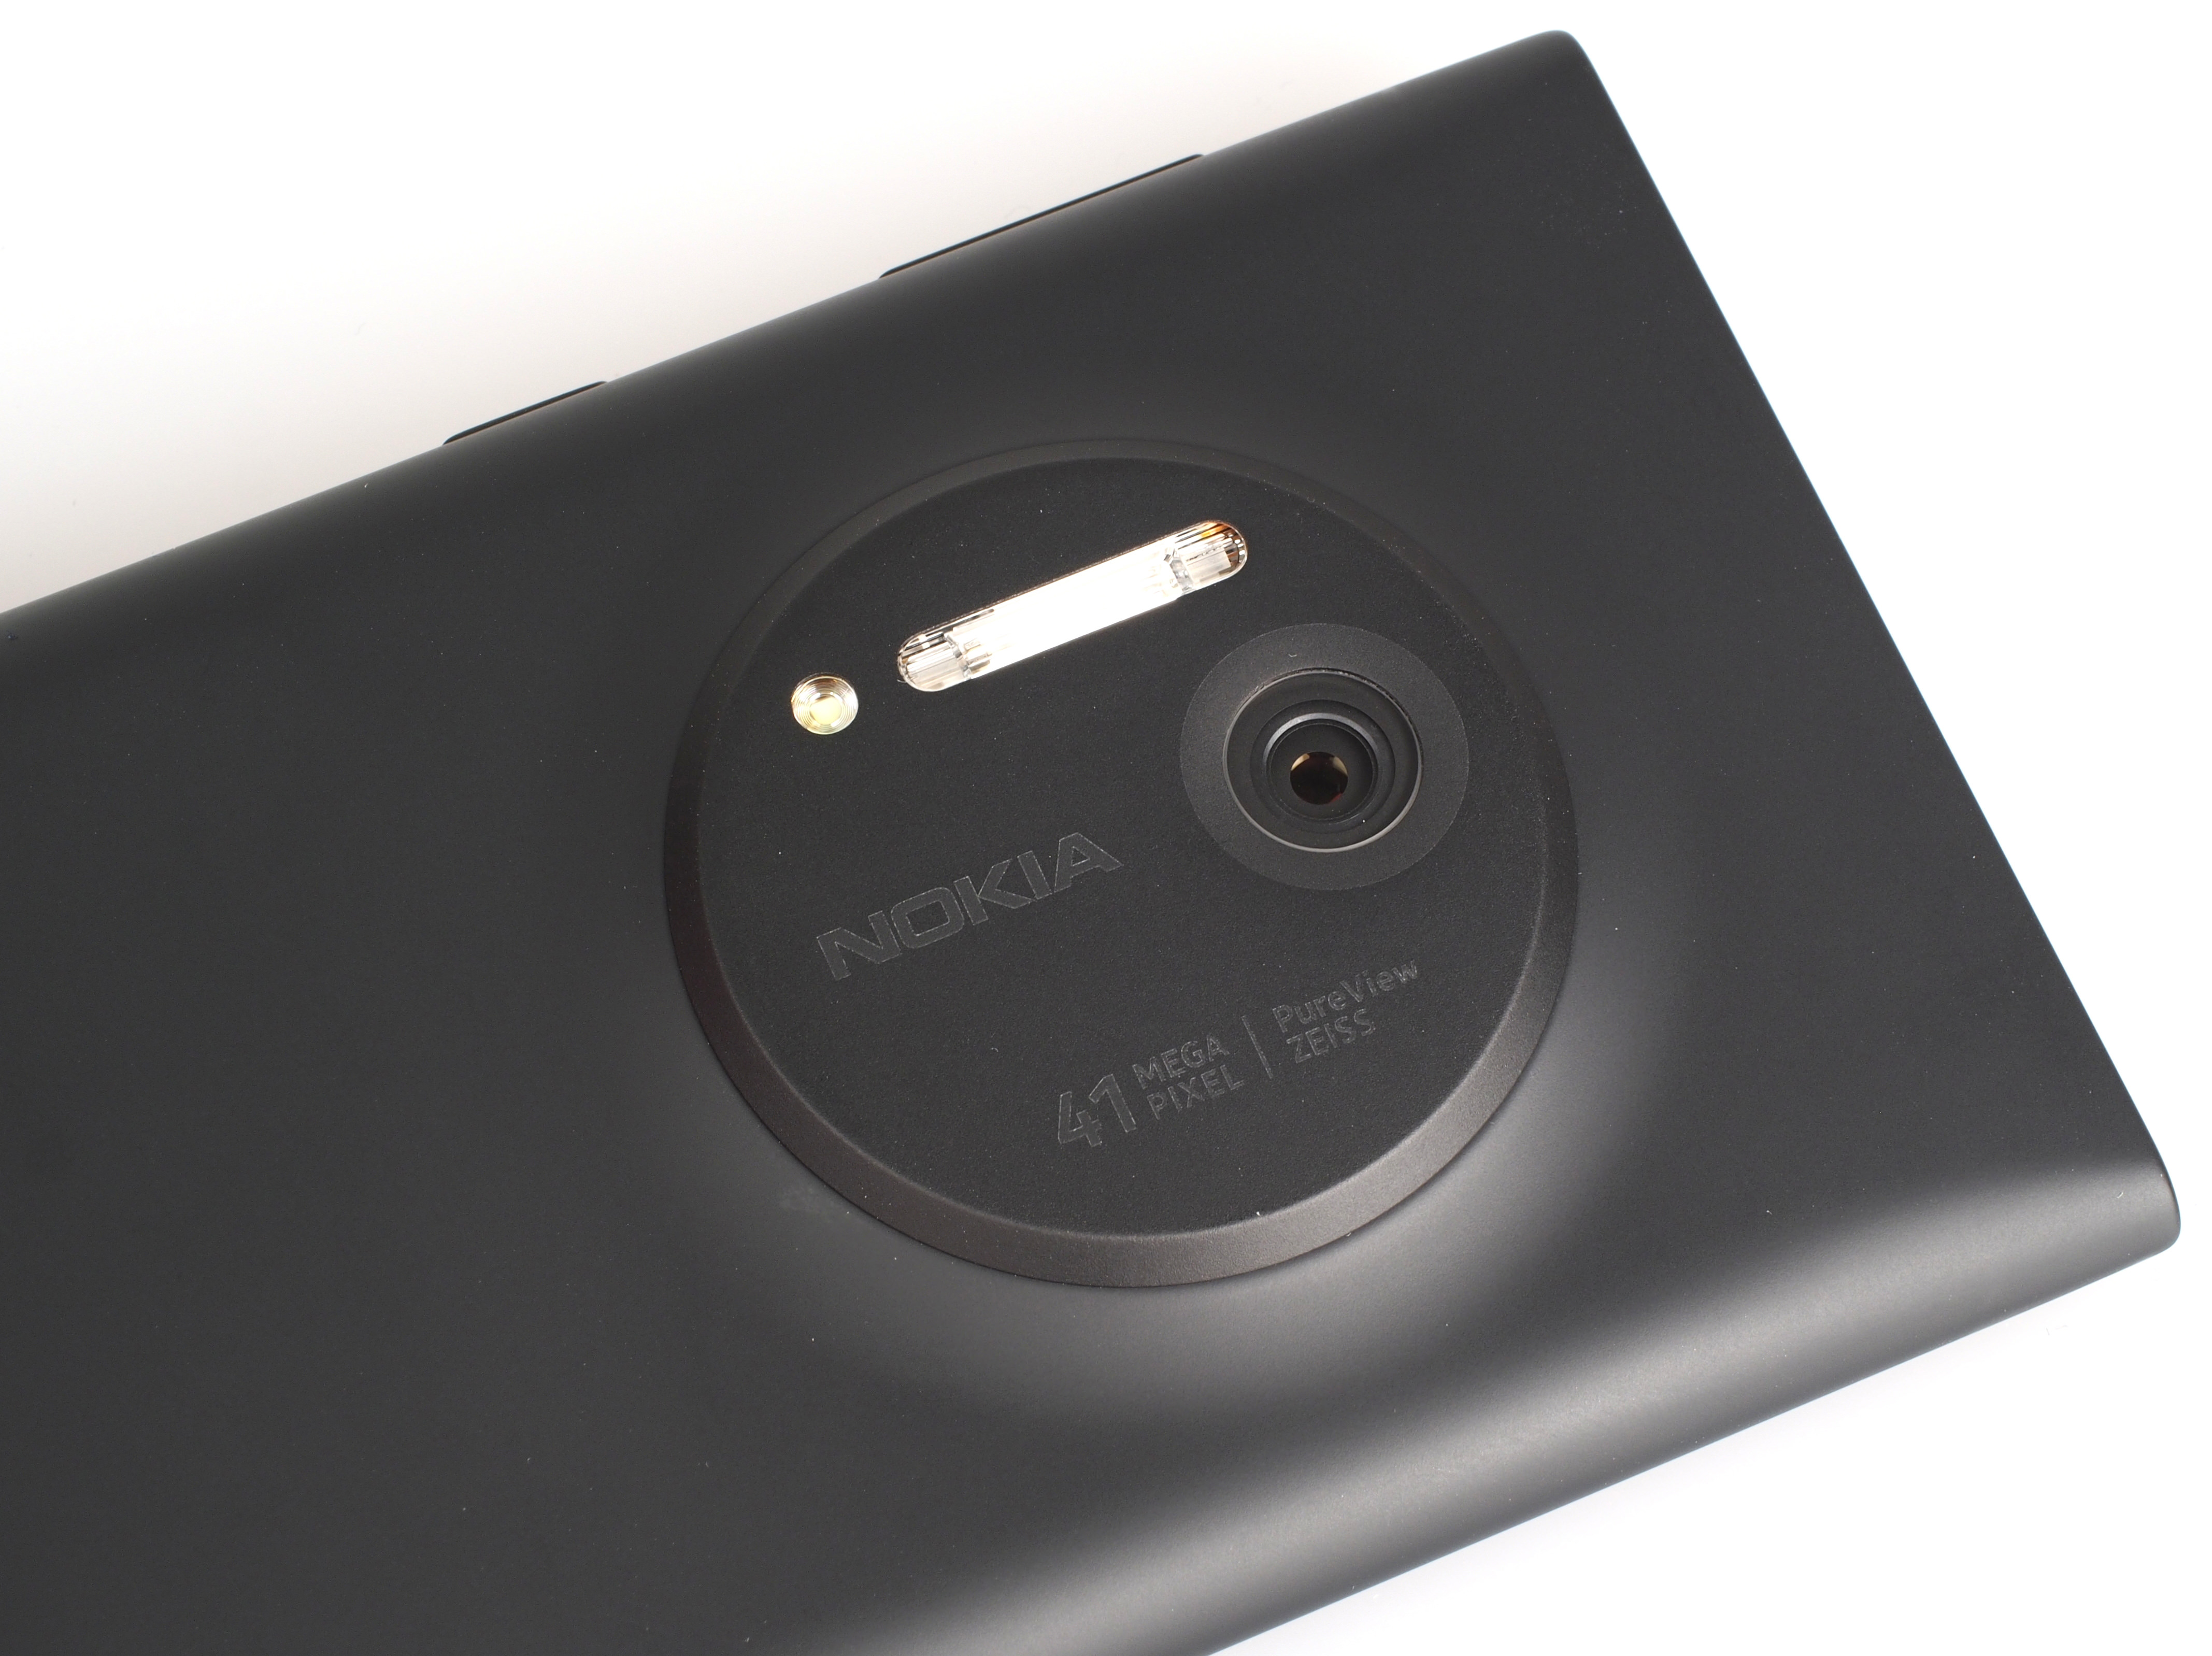 nokia lumia 1020 black. nokia lumia 1020 black (14) i